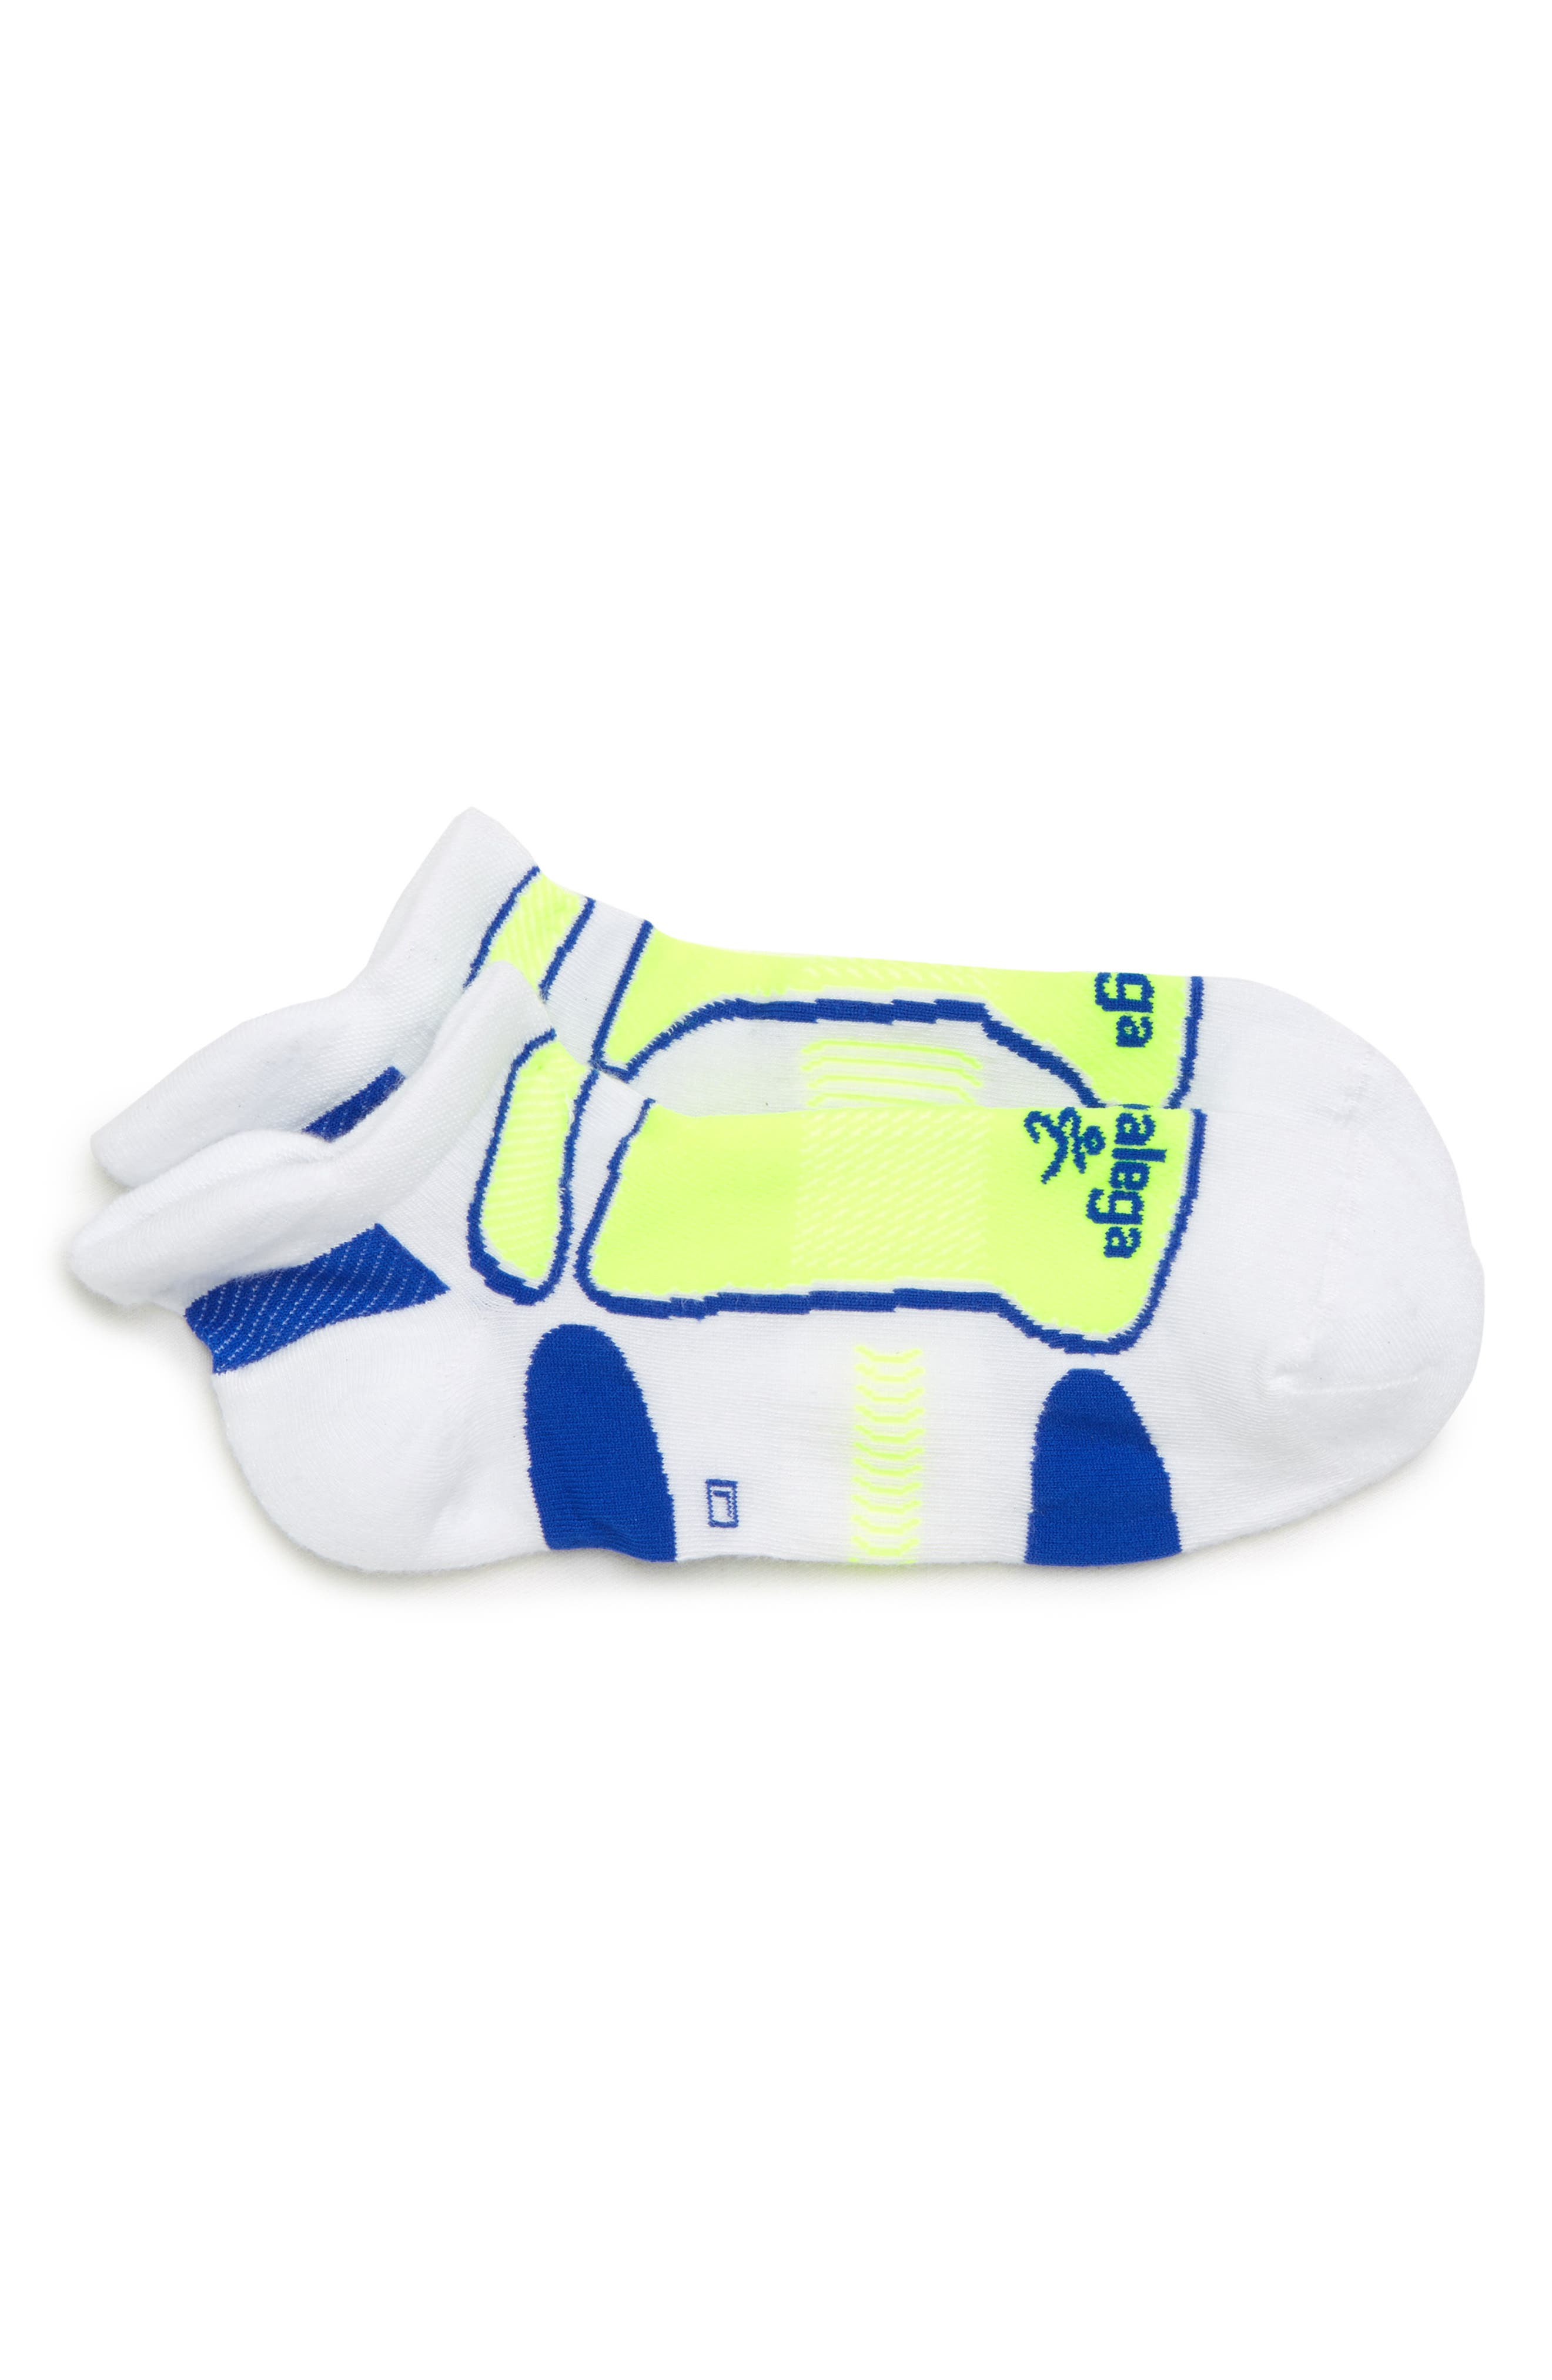 Ultra Light Socks,                             Main thumbnail 1, color,                             WHITE/ NEON YELLOW/ ROYAL